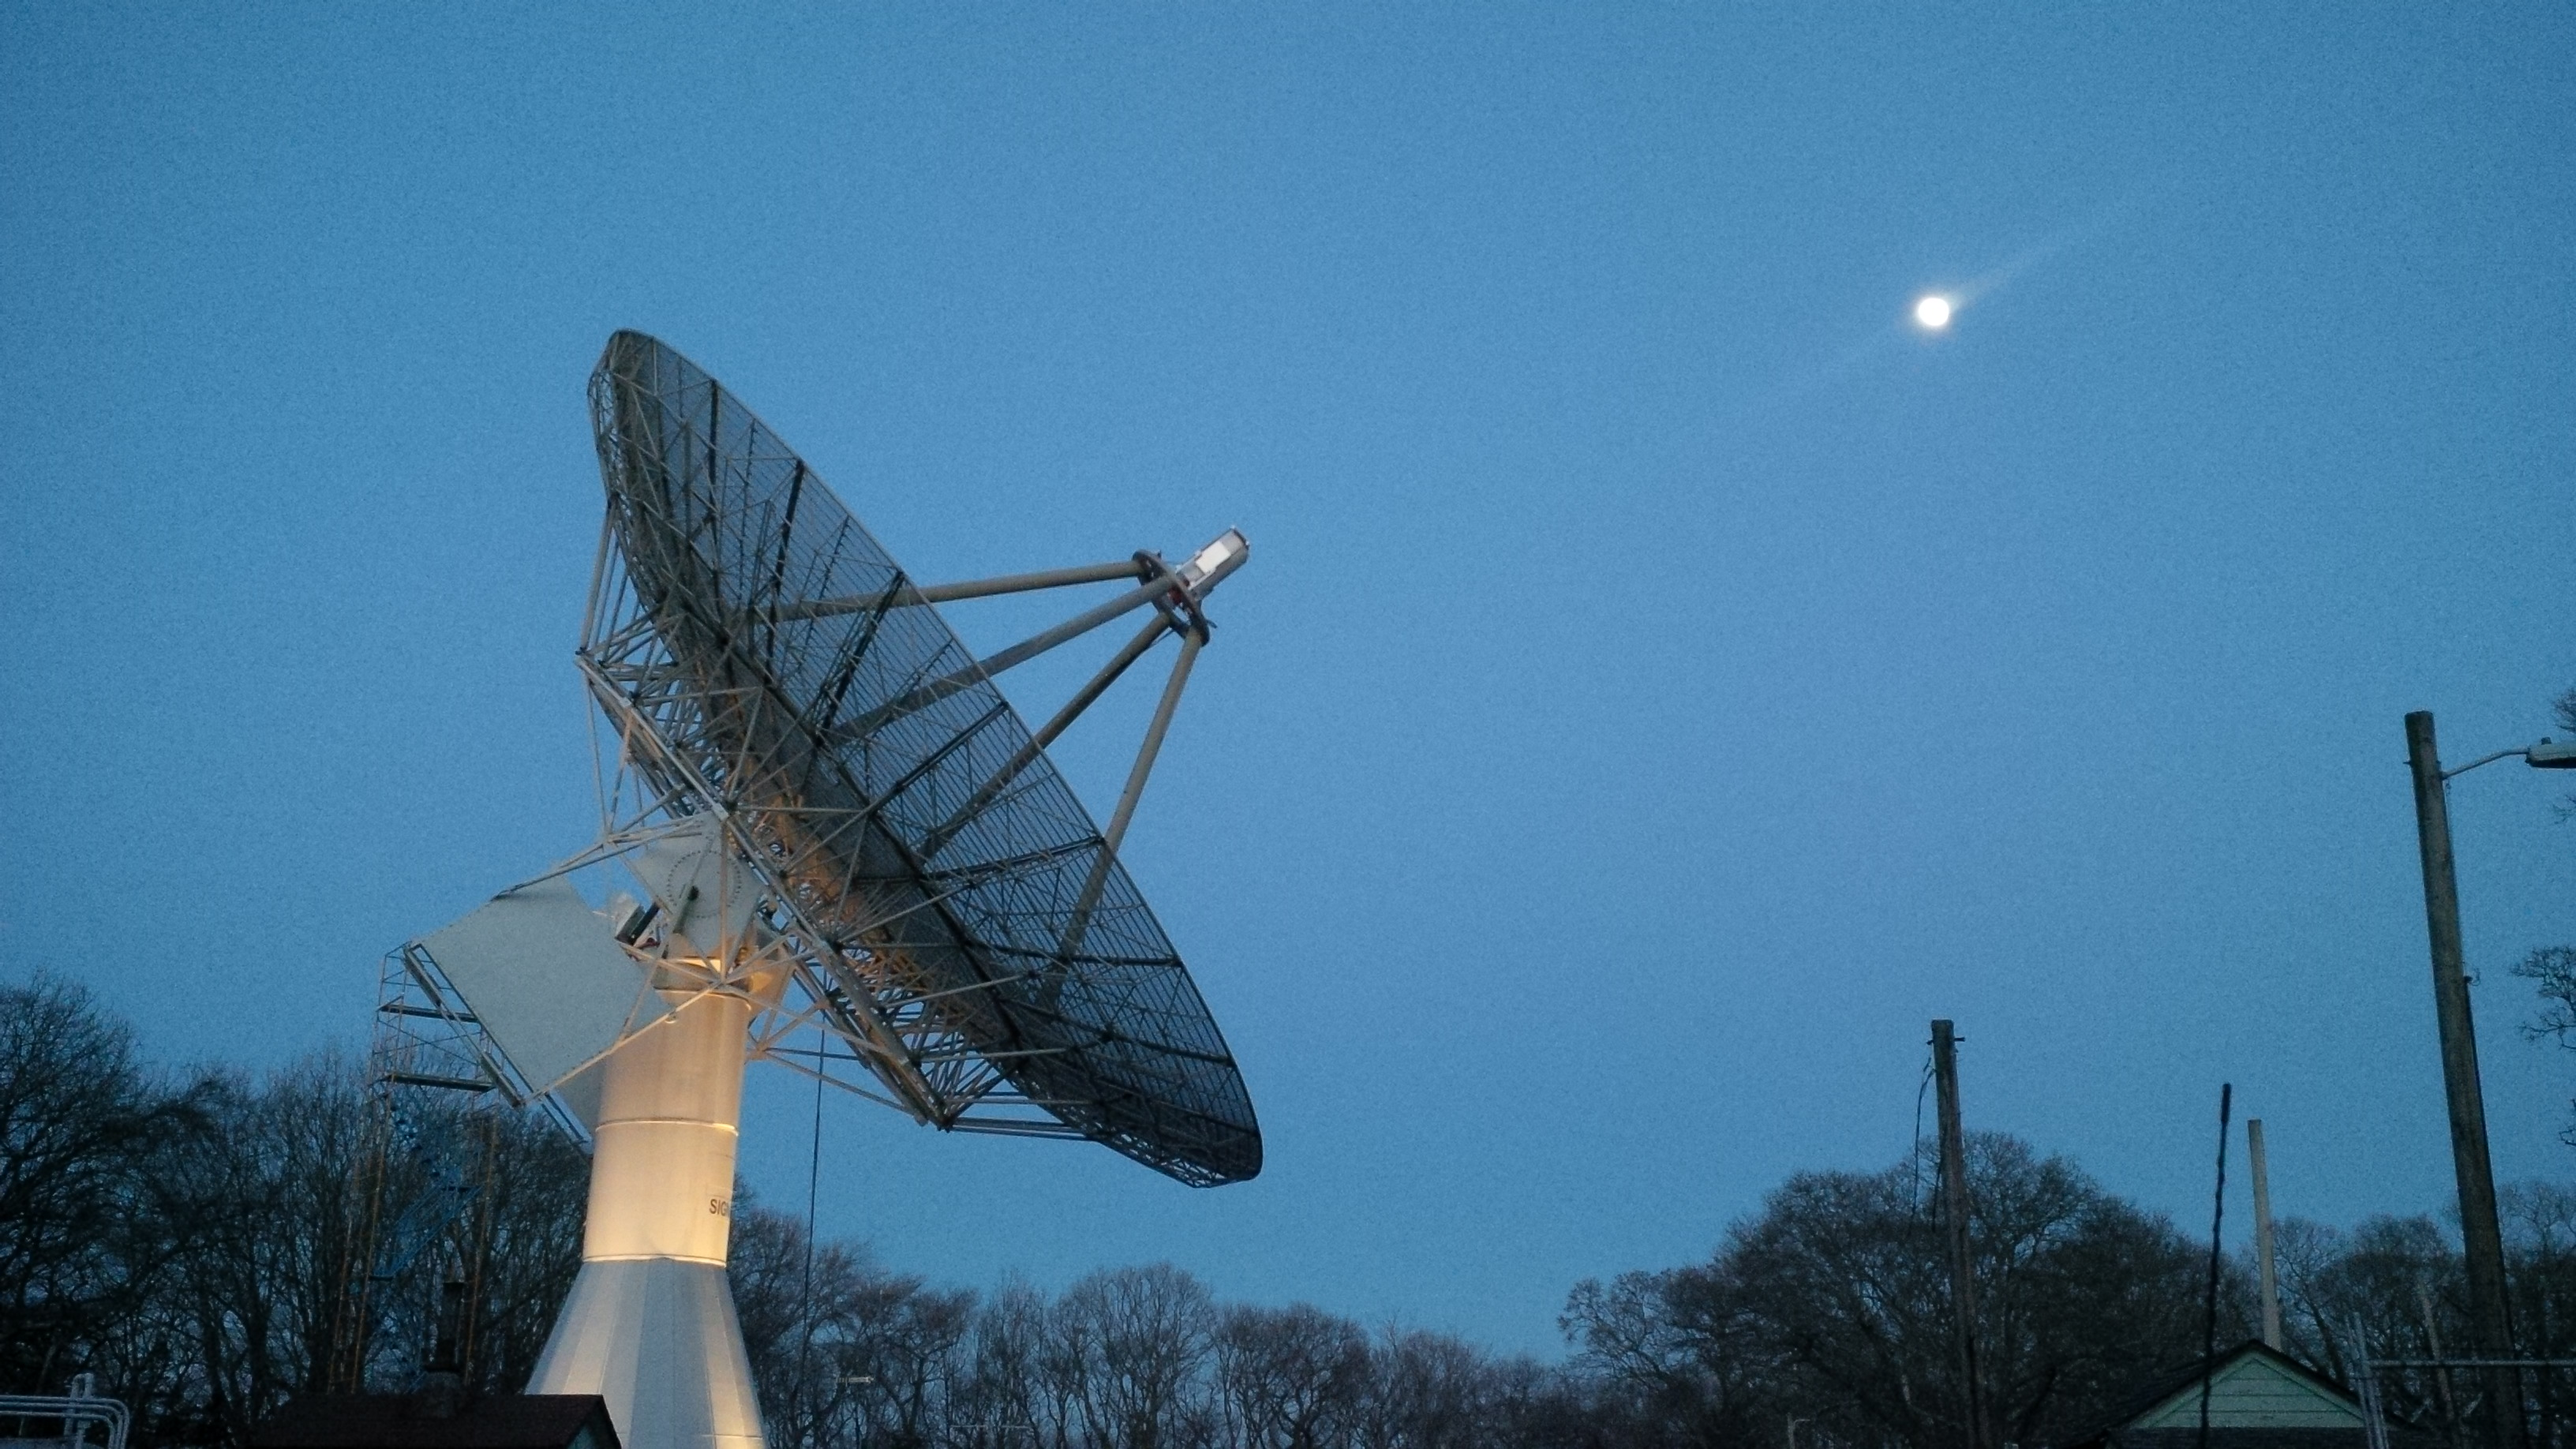 The TIROS Dish and the Moon at Dusk